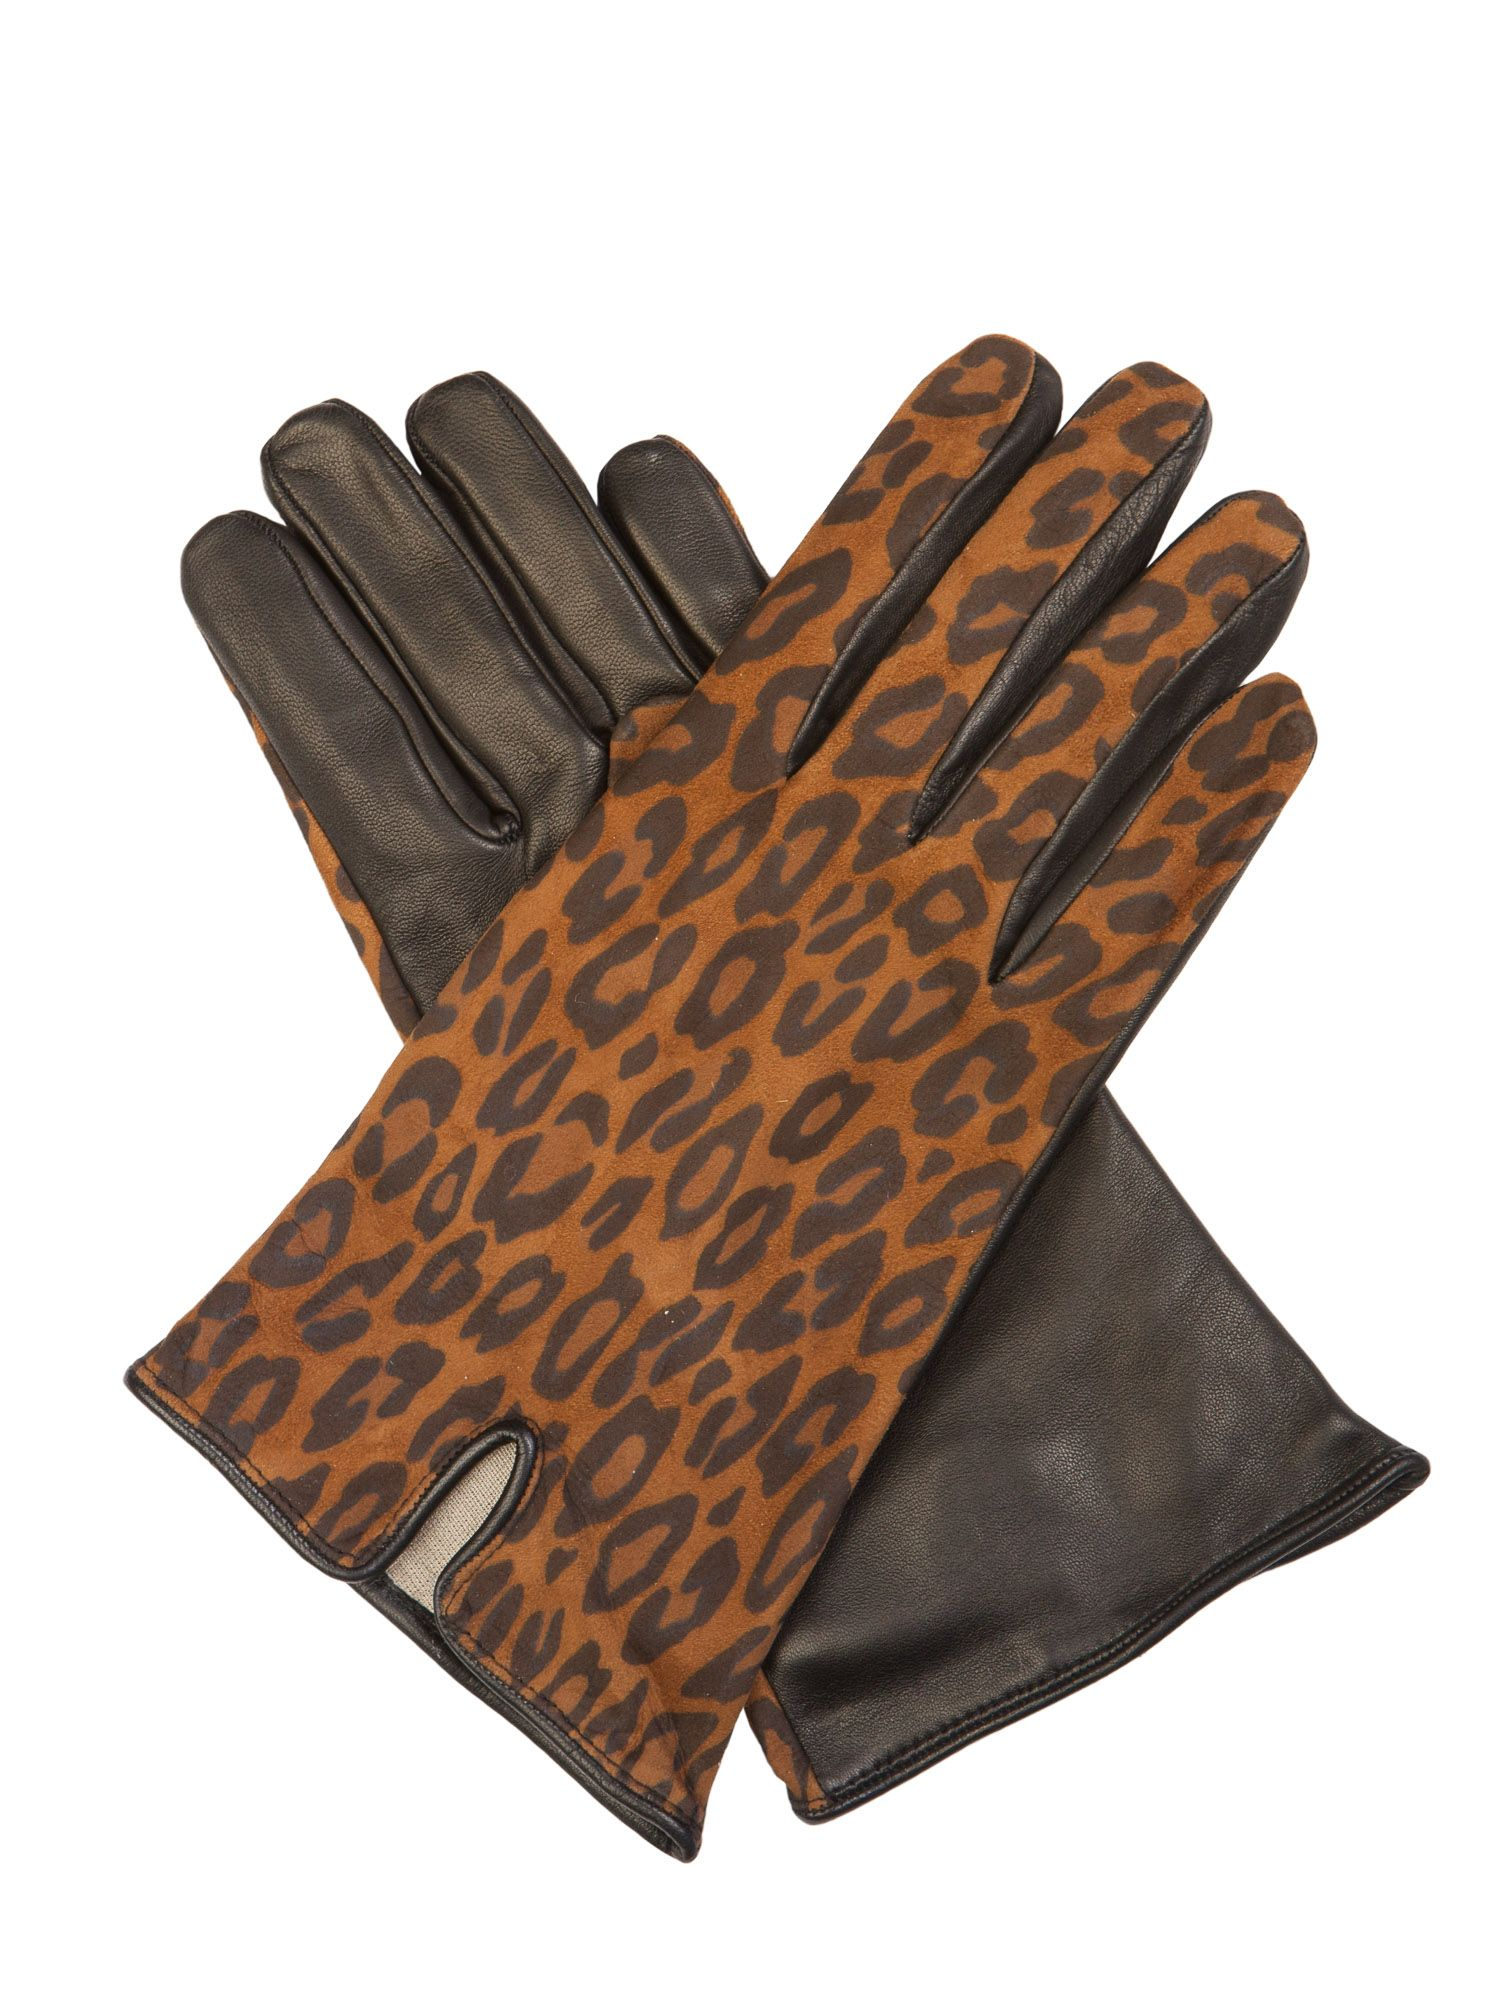 Vintage Style Gloves Cornelia James Eloise Suede Animal Print Gloves £95.00 AT vintagedancer.com